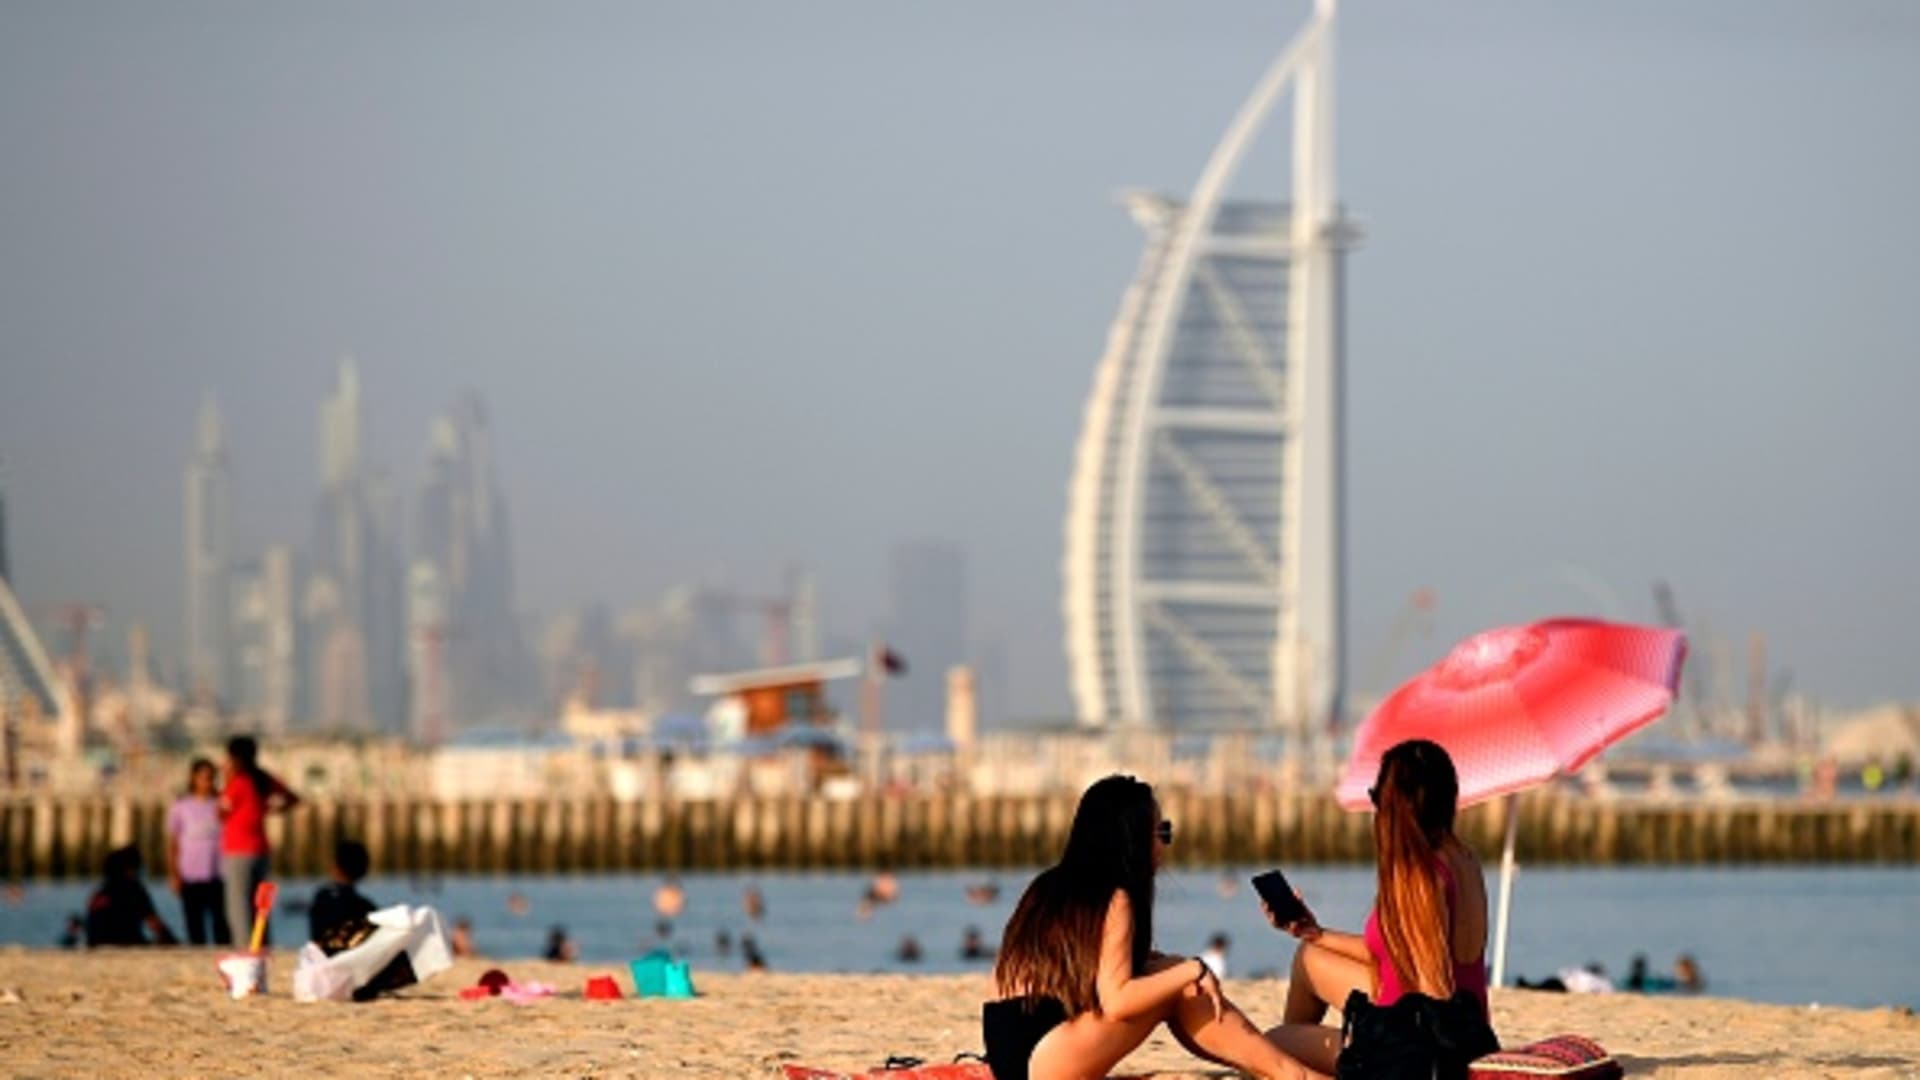 Woman sunbathers sit along a beach in the Gulf emirate of Dubai on July 24, 2020, while behind is seen the Burj al-Arab hotel.